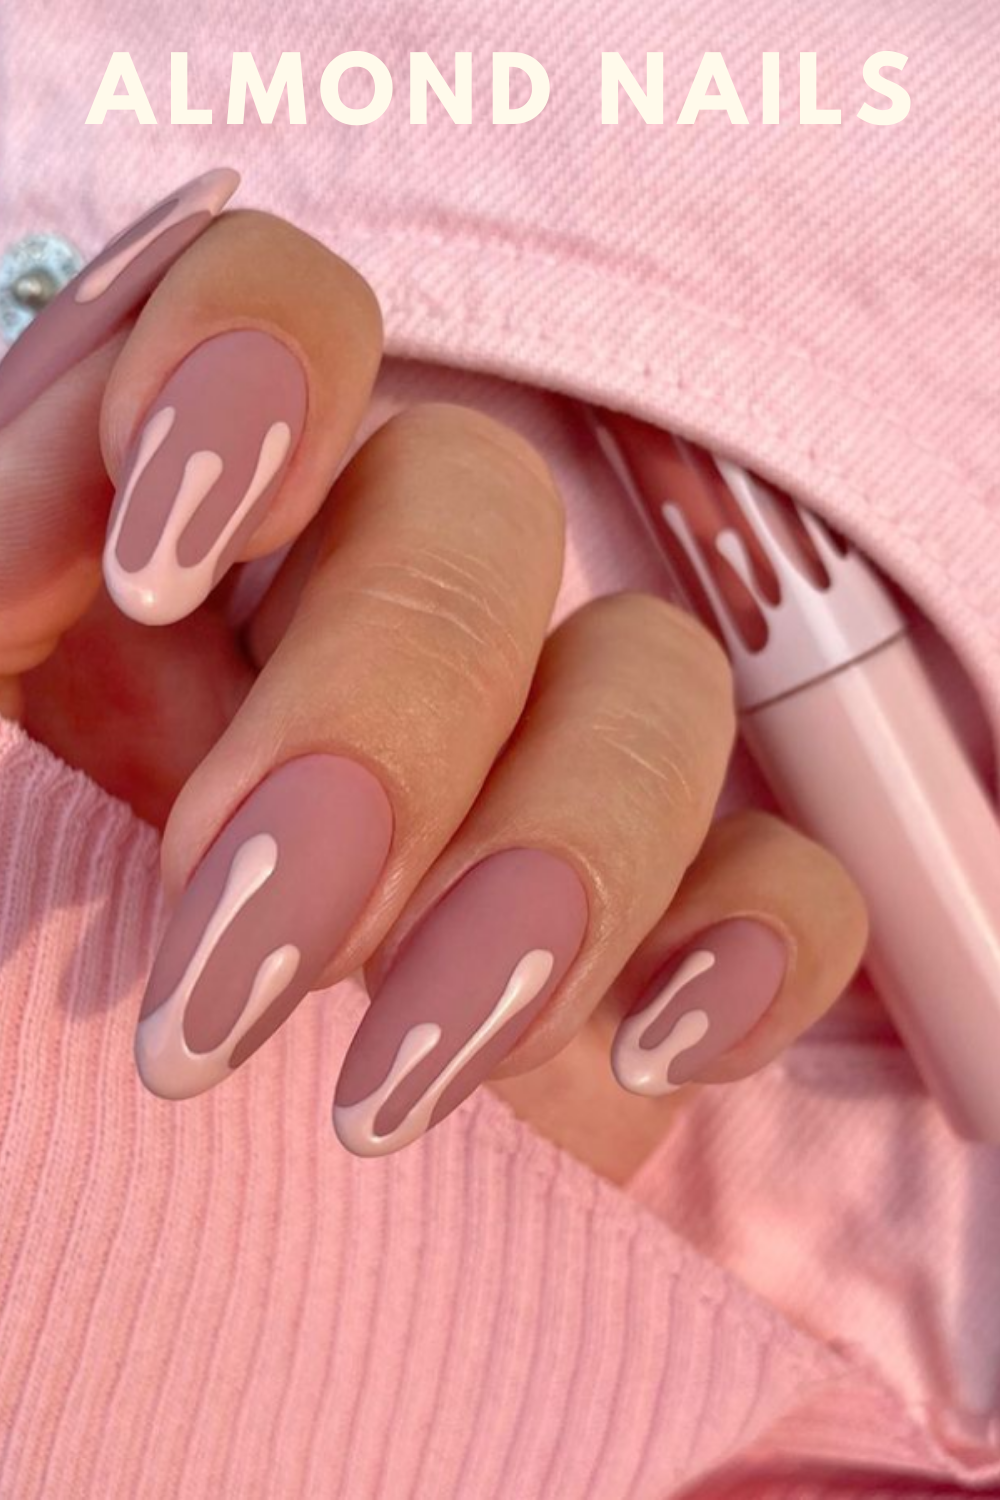 Best Almond Nail Art Design  for Everyone in 2021